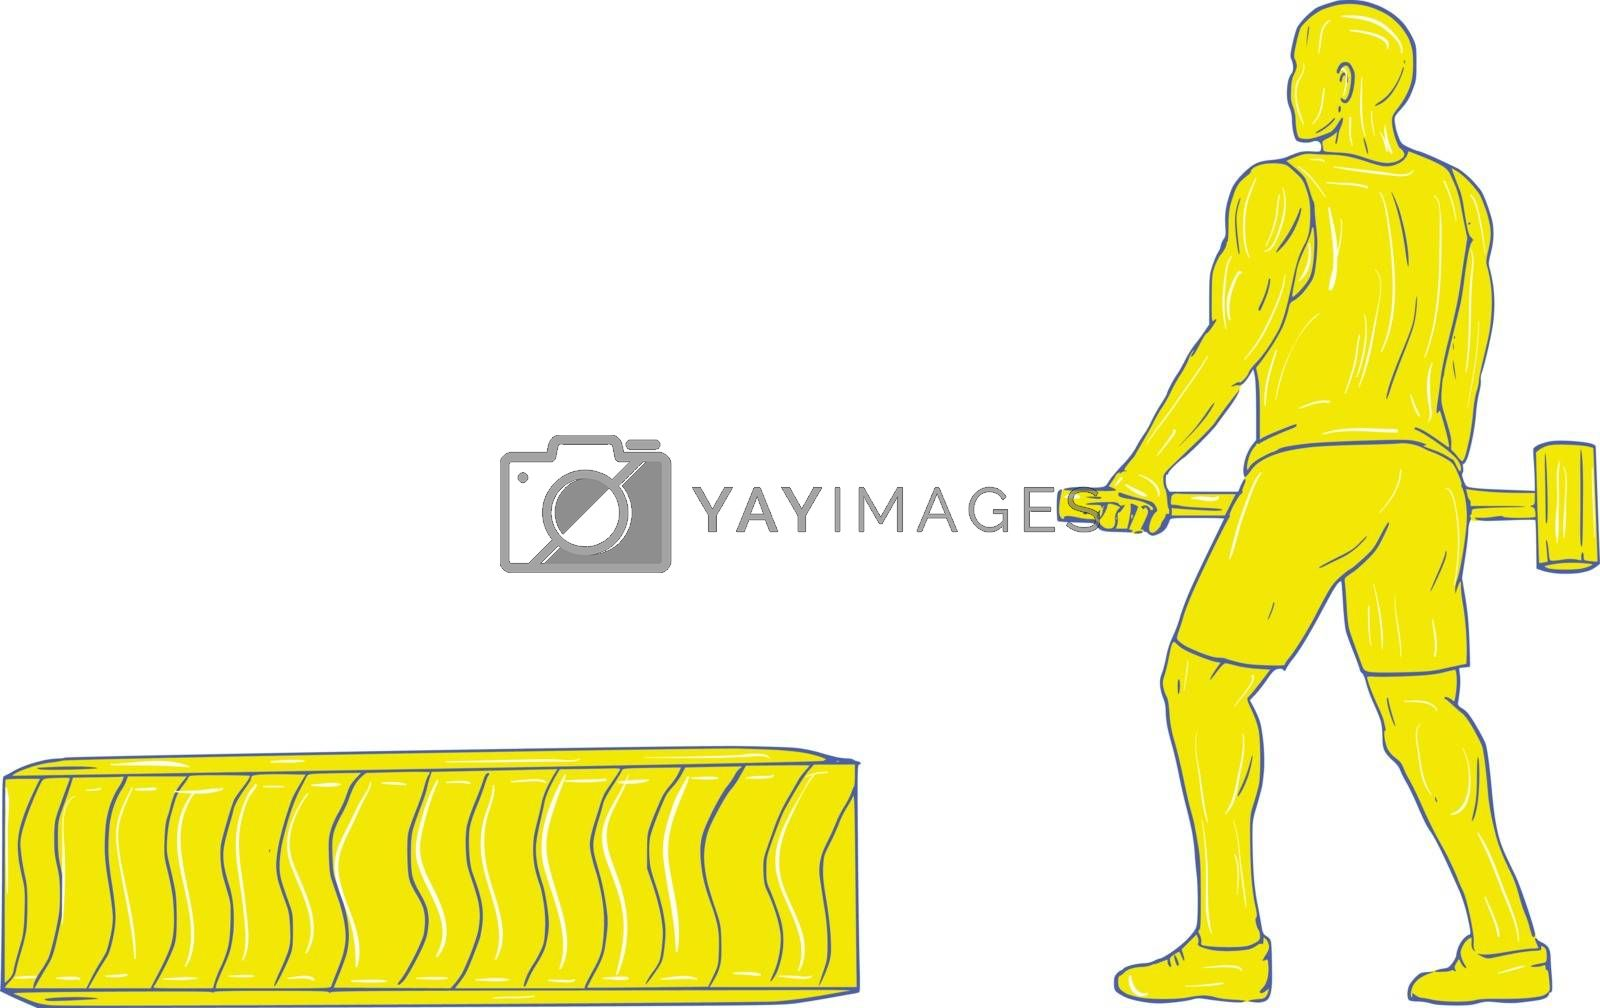 Drawing sketch style illustration of an athlete working out holding hammer with tire viewed from the side set on isolated white background.